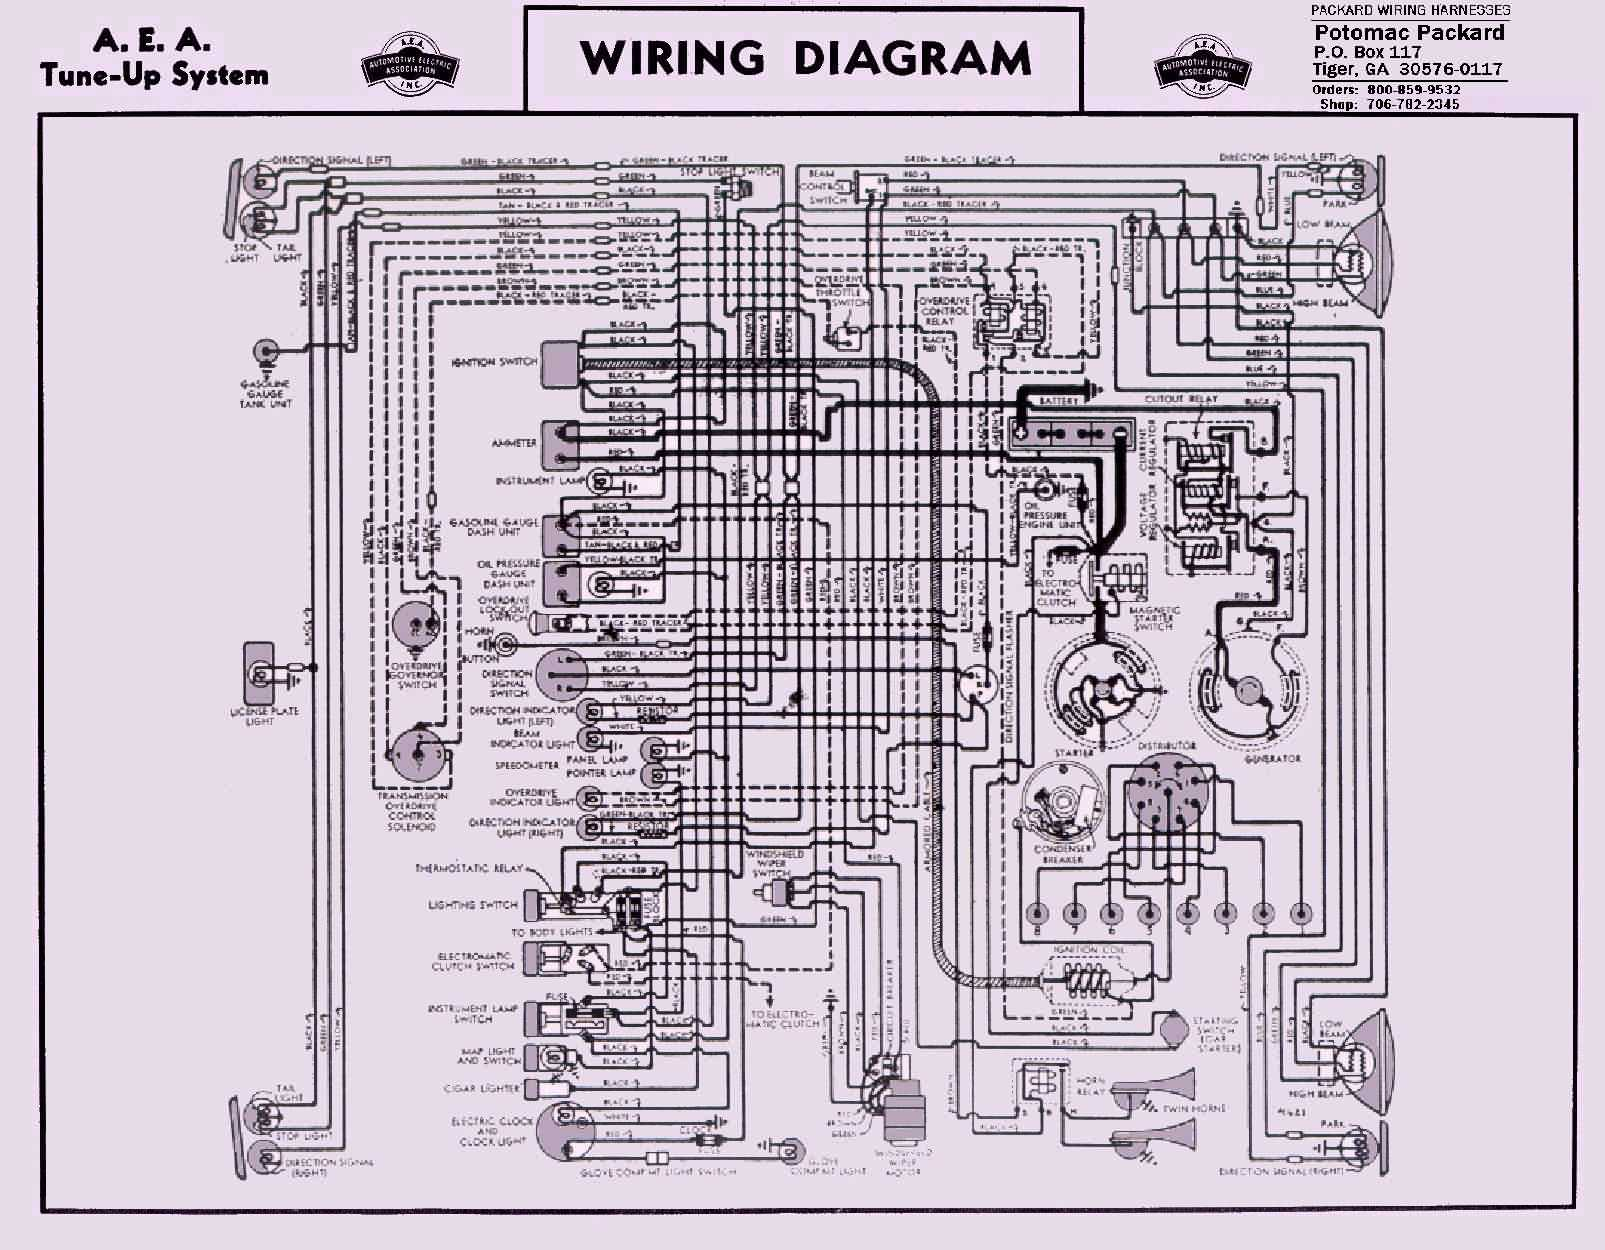 1941 Dodge Truck Wiring Diagram Library Packard Diagrams The Old Car Manual Project Rh Oldcarmanualproject Com 1946 Clipper